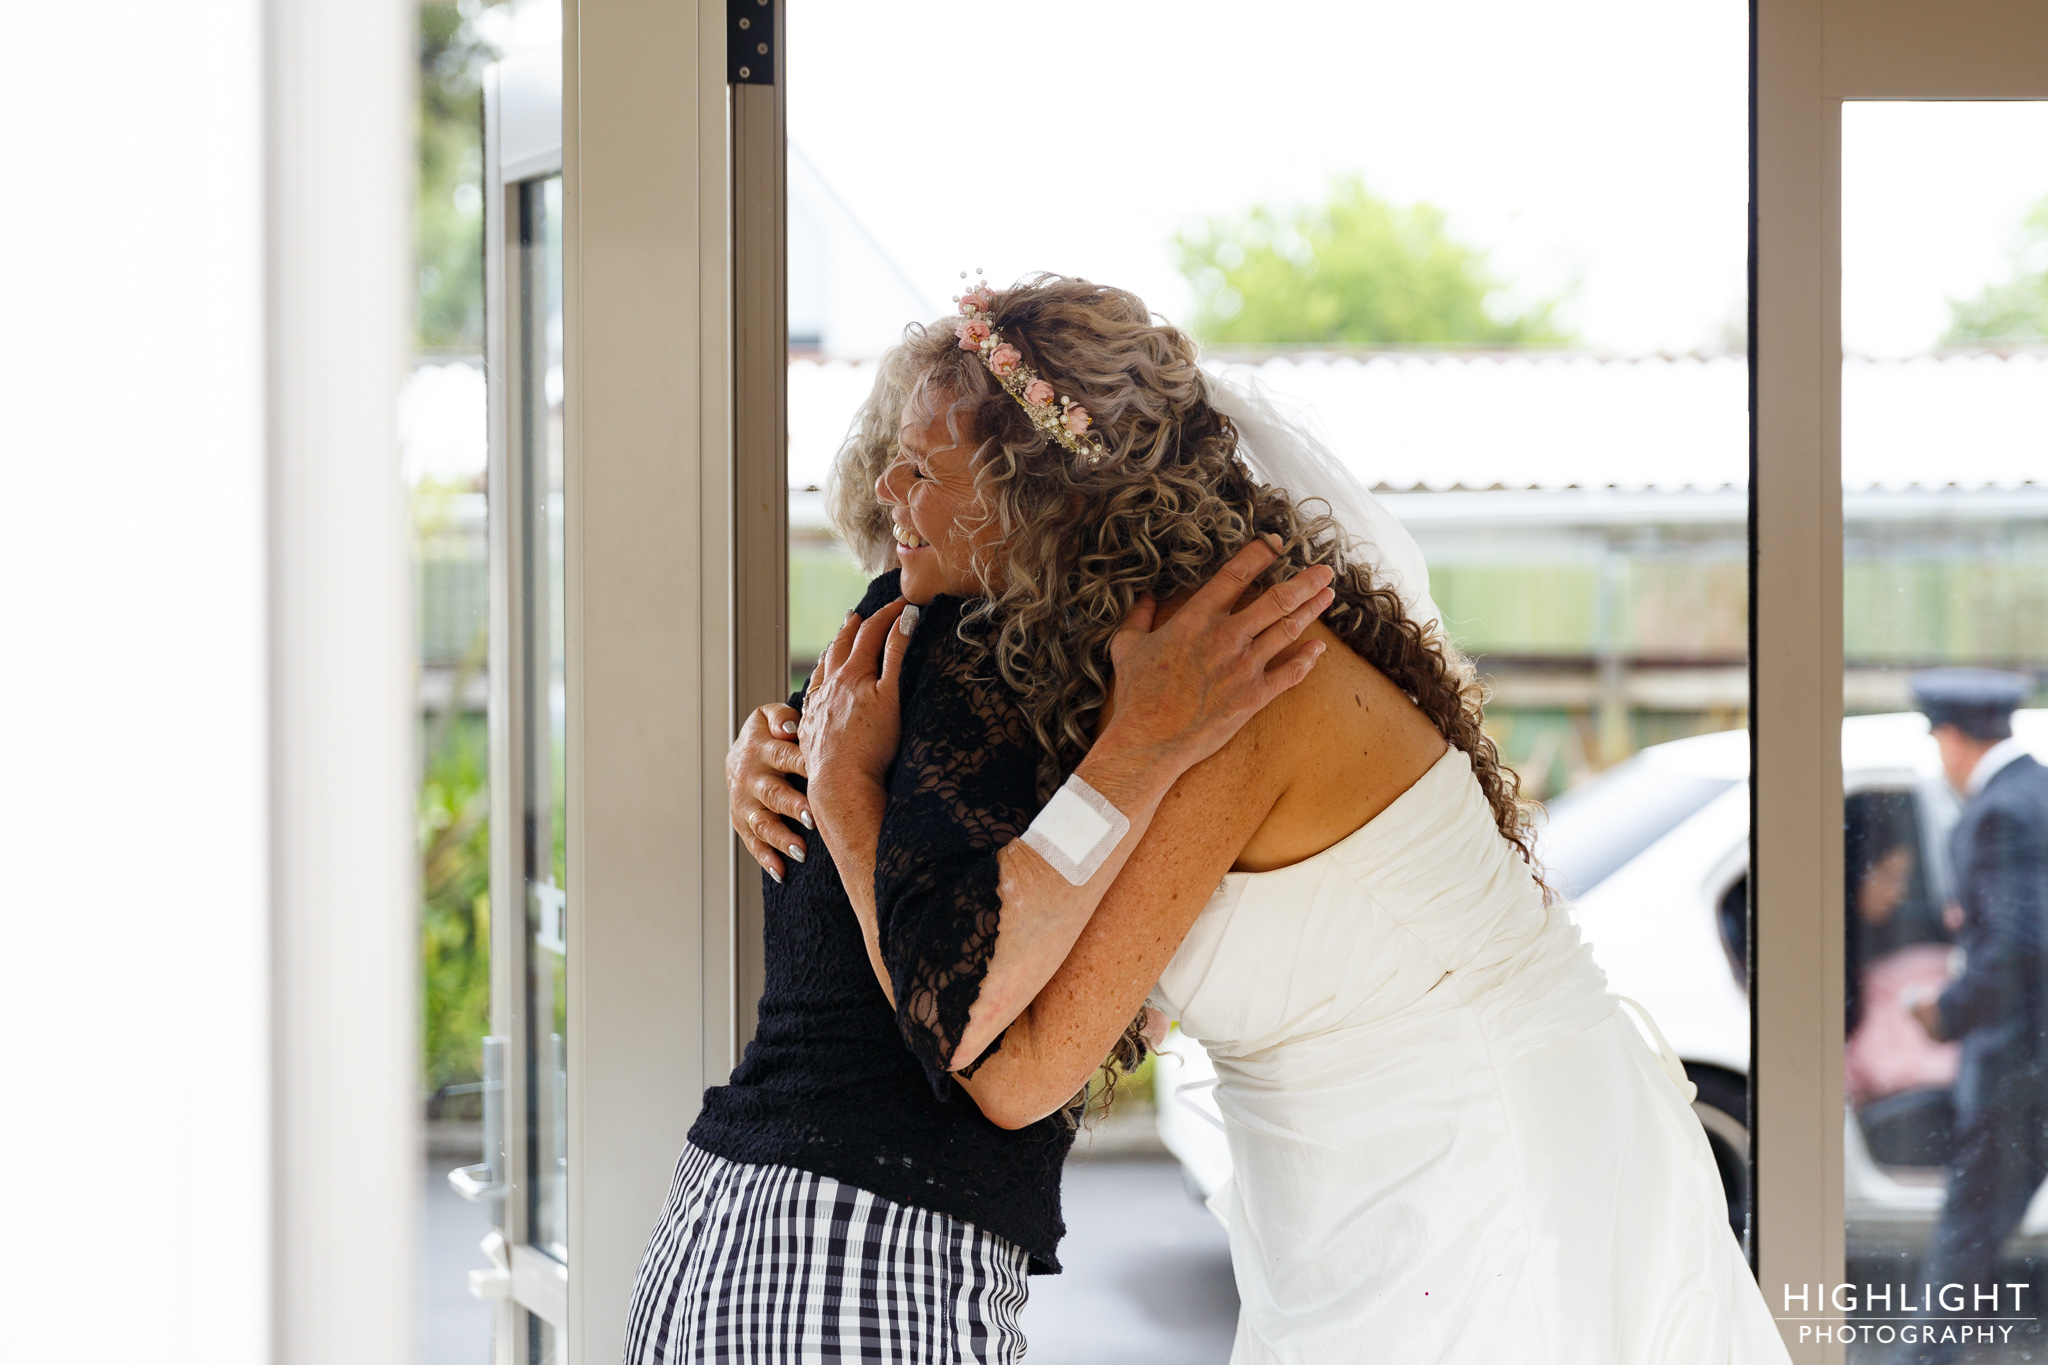 highlight_wedding_photography_palmerston_north_manawatu_chalet_wedding-20.jpg